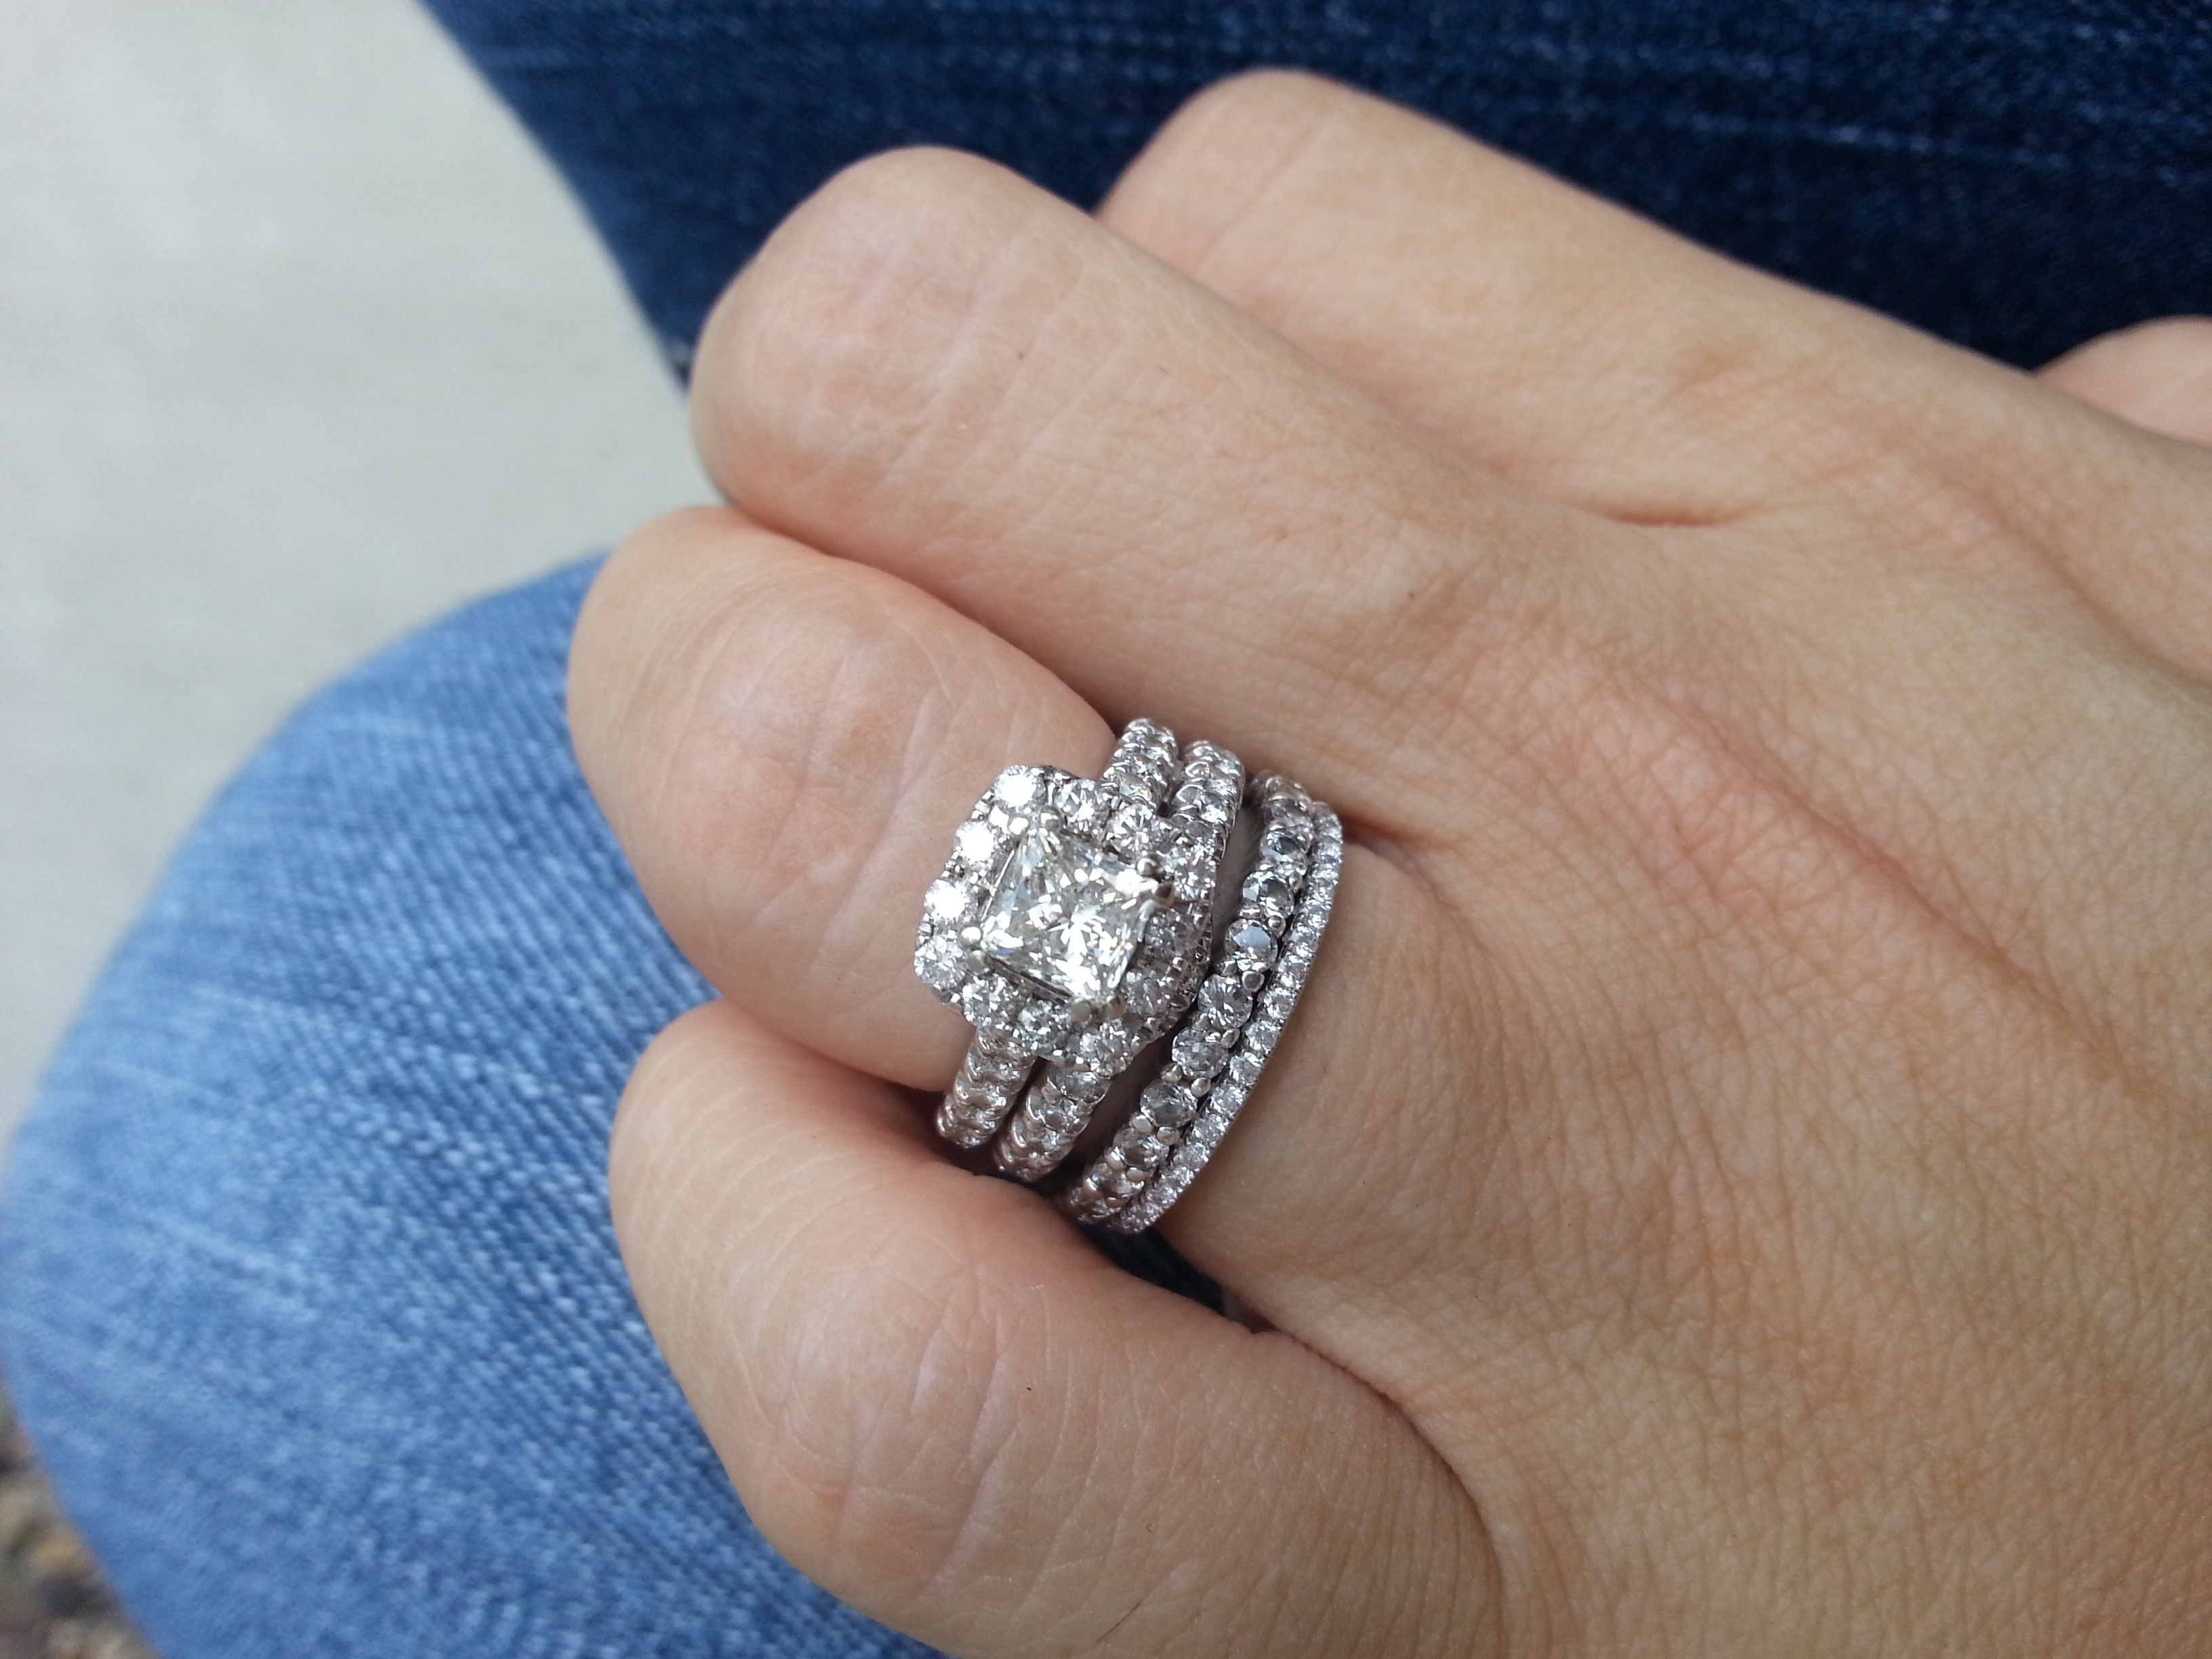 how do you wear your stacked rings stackable wedding bands How do you wear your stacked rings